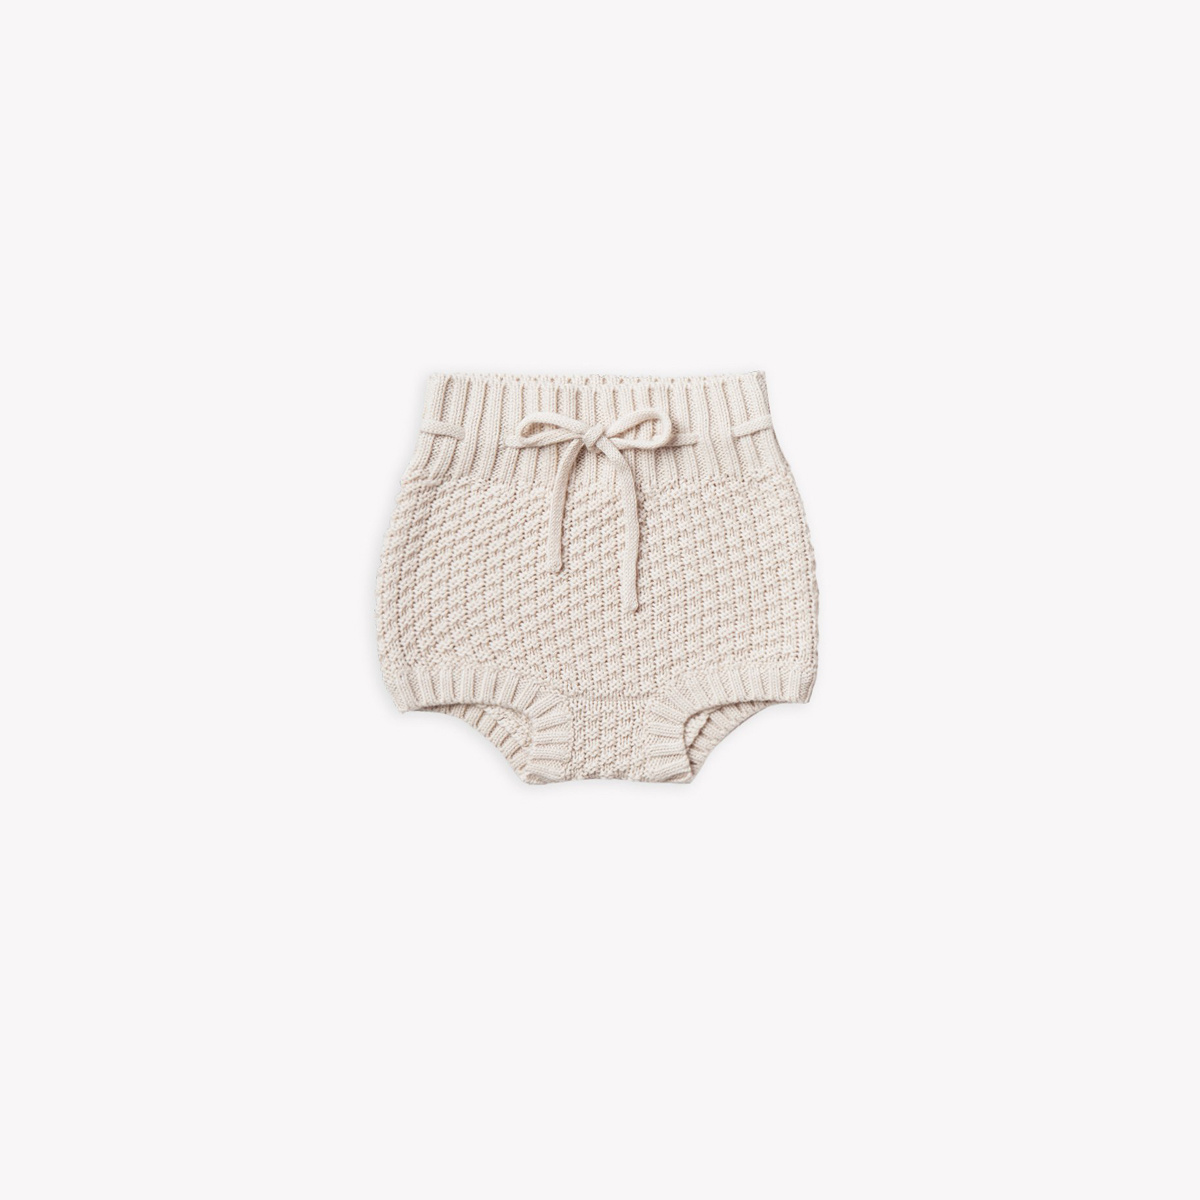 Quincy Mae - QM Quincy Mae - Knit Tie Bloomer in Pebble